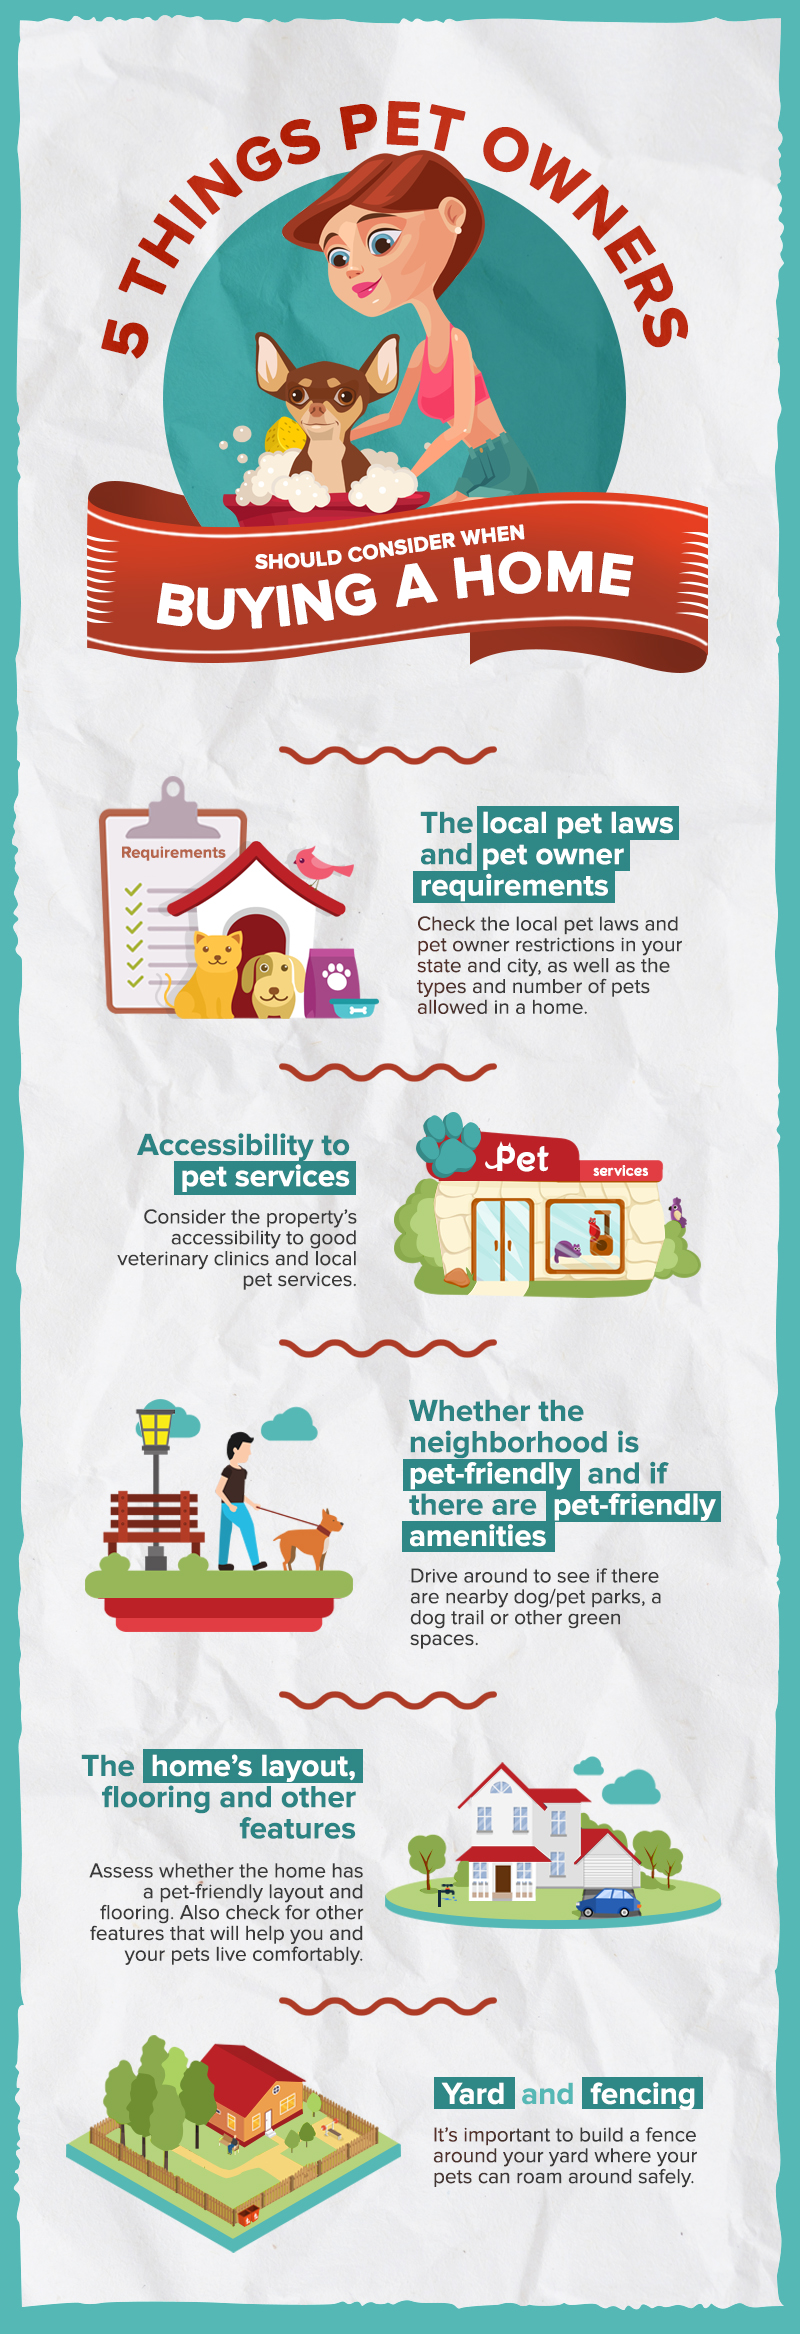 The Pet Owner's Guide To Buying A Home: 5 Things to Consider for Your Furry Friends